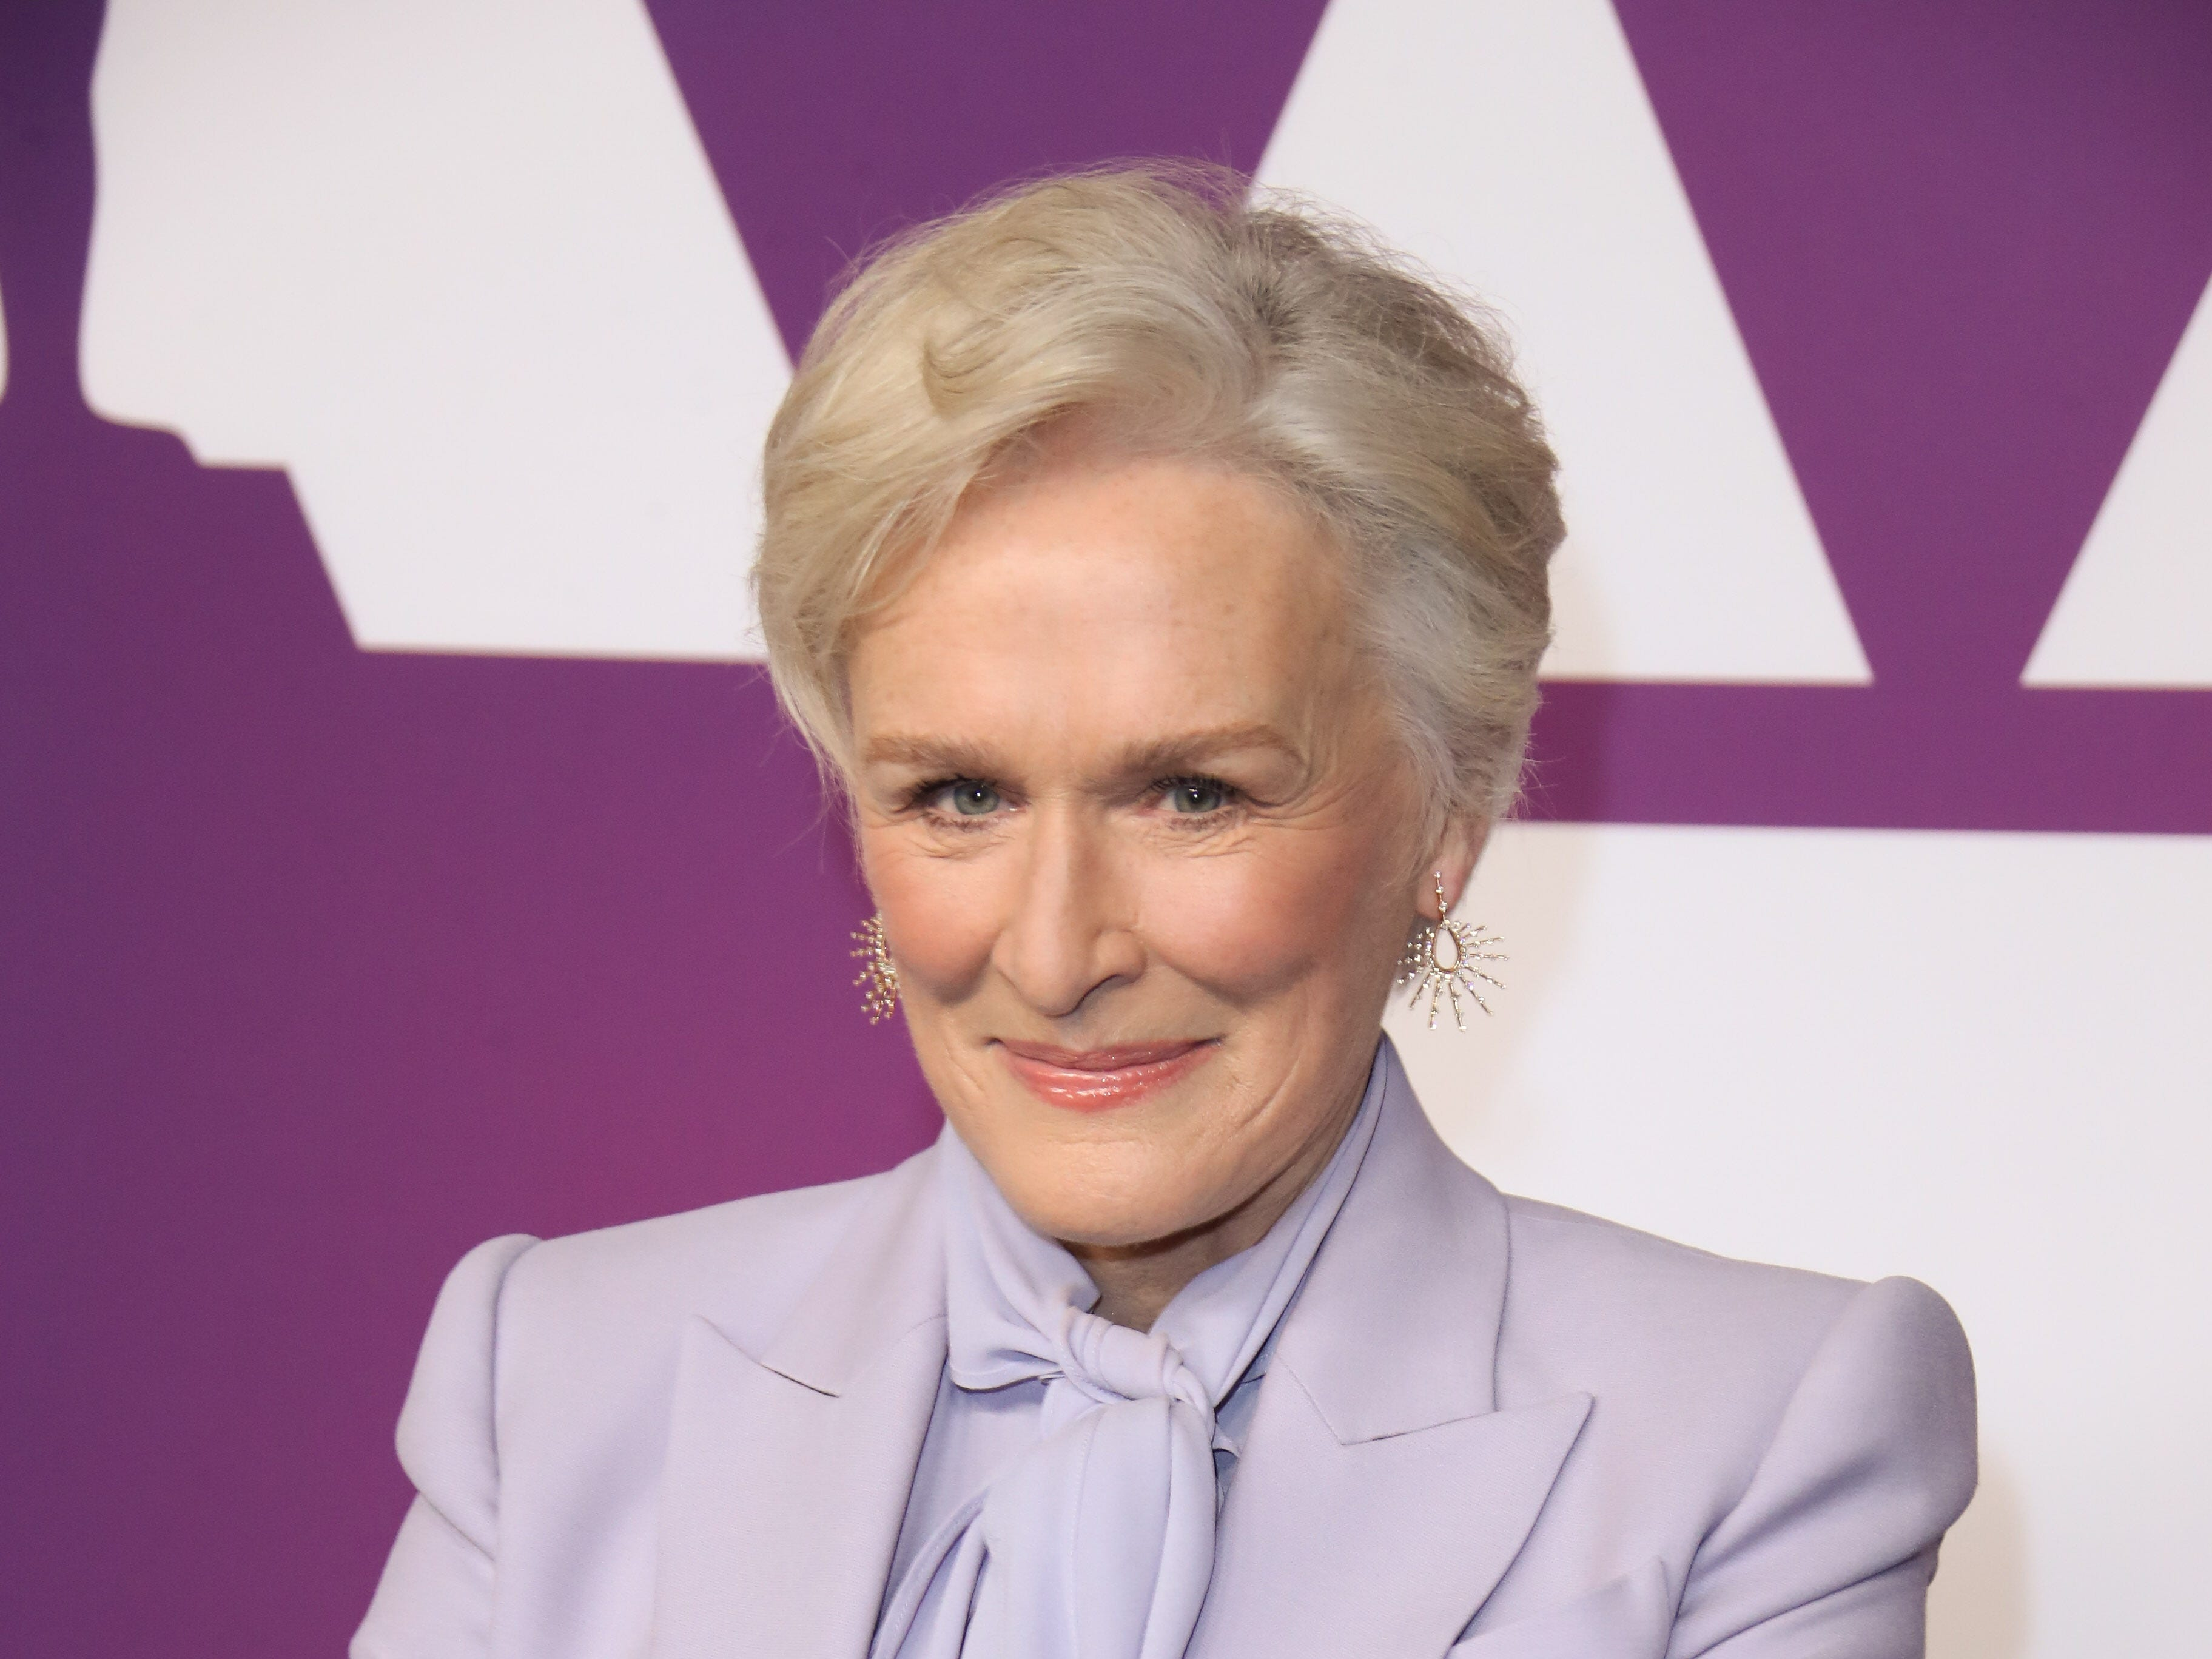 2/4/19 11:21:12 AM -- Beverly Hills, CA, U.S.A  --Glenn Close arrives at the 91st Oscar nominees luncheon at the Beverly Hilton Hotel in Beverly Hills, CA--    Photo by Dan MacMedan, USA TODAY contract photographer ORG XMIT:  DM 137796 OscarNomineesLun 2/4/ [Via MerlinFTP Drop]